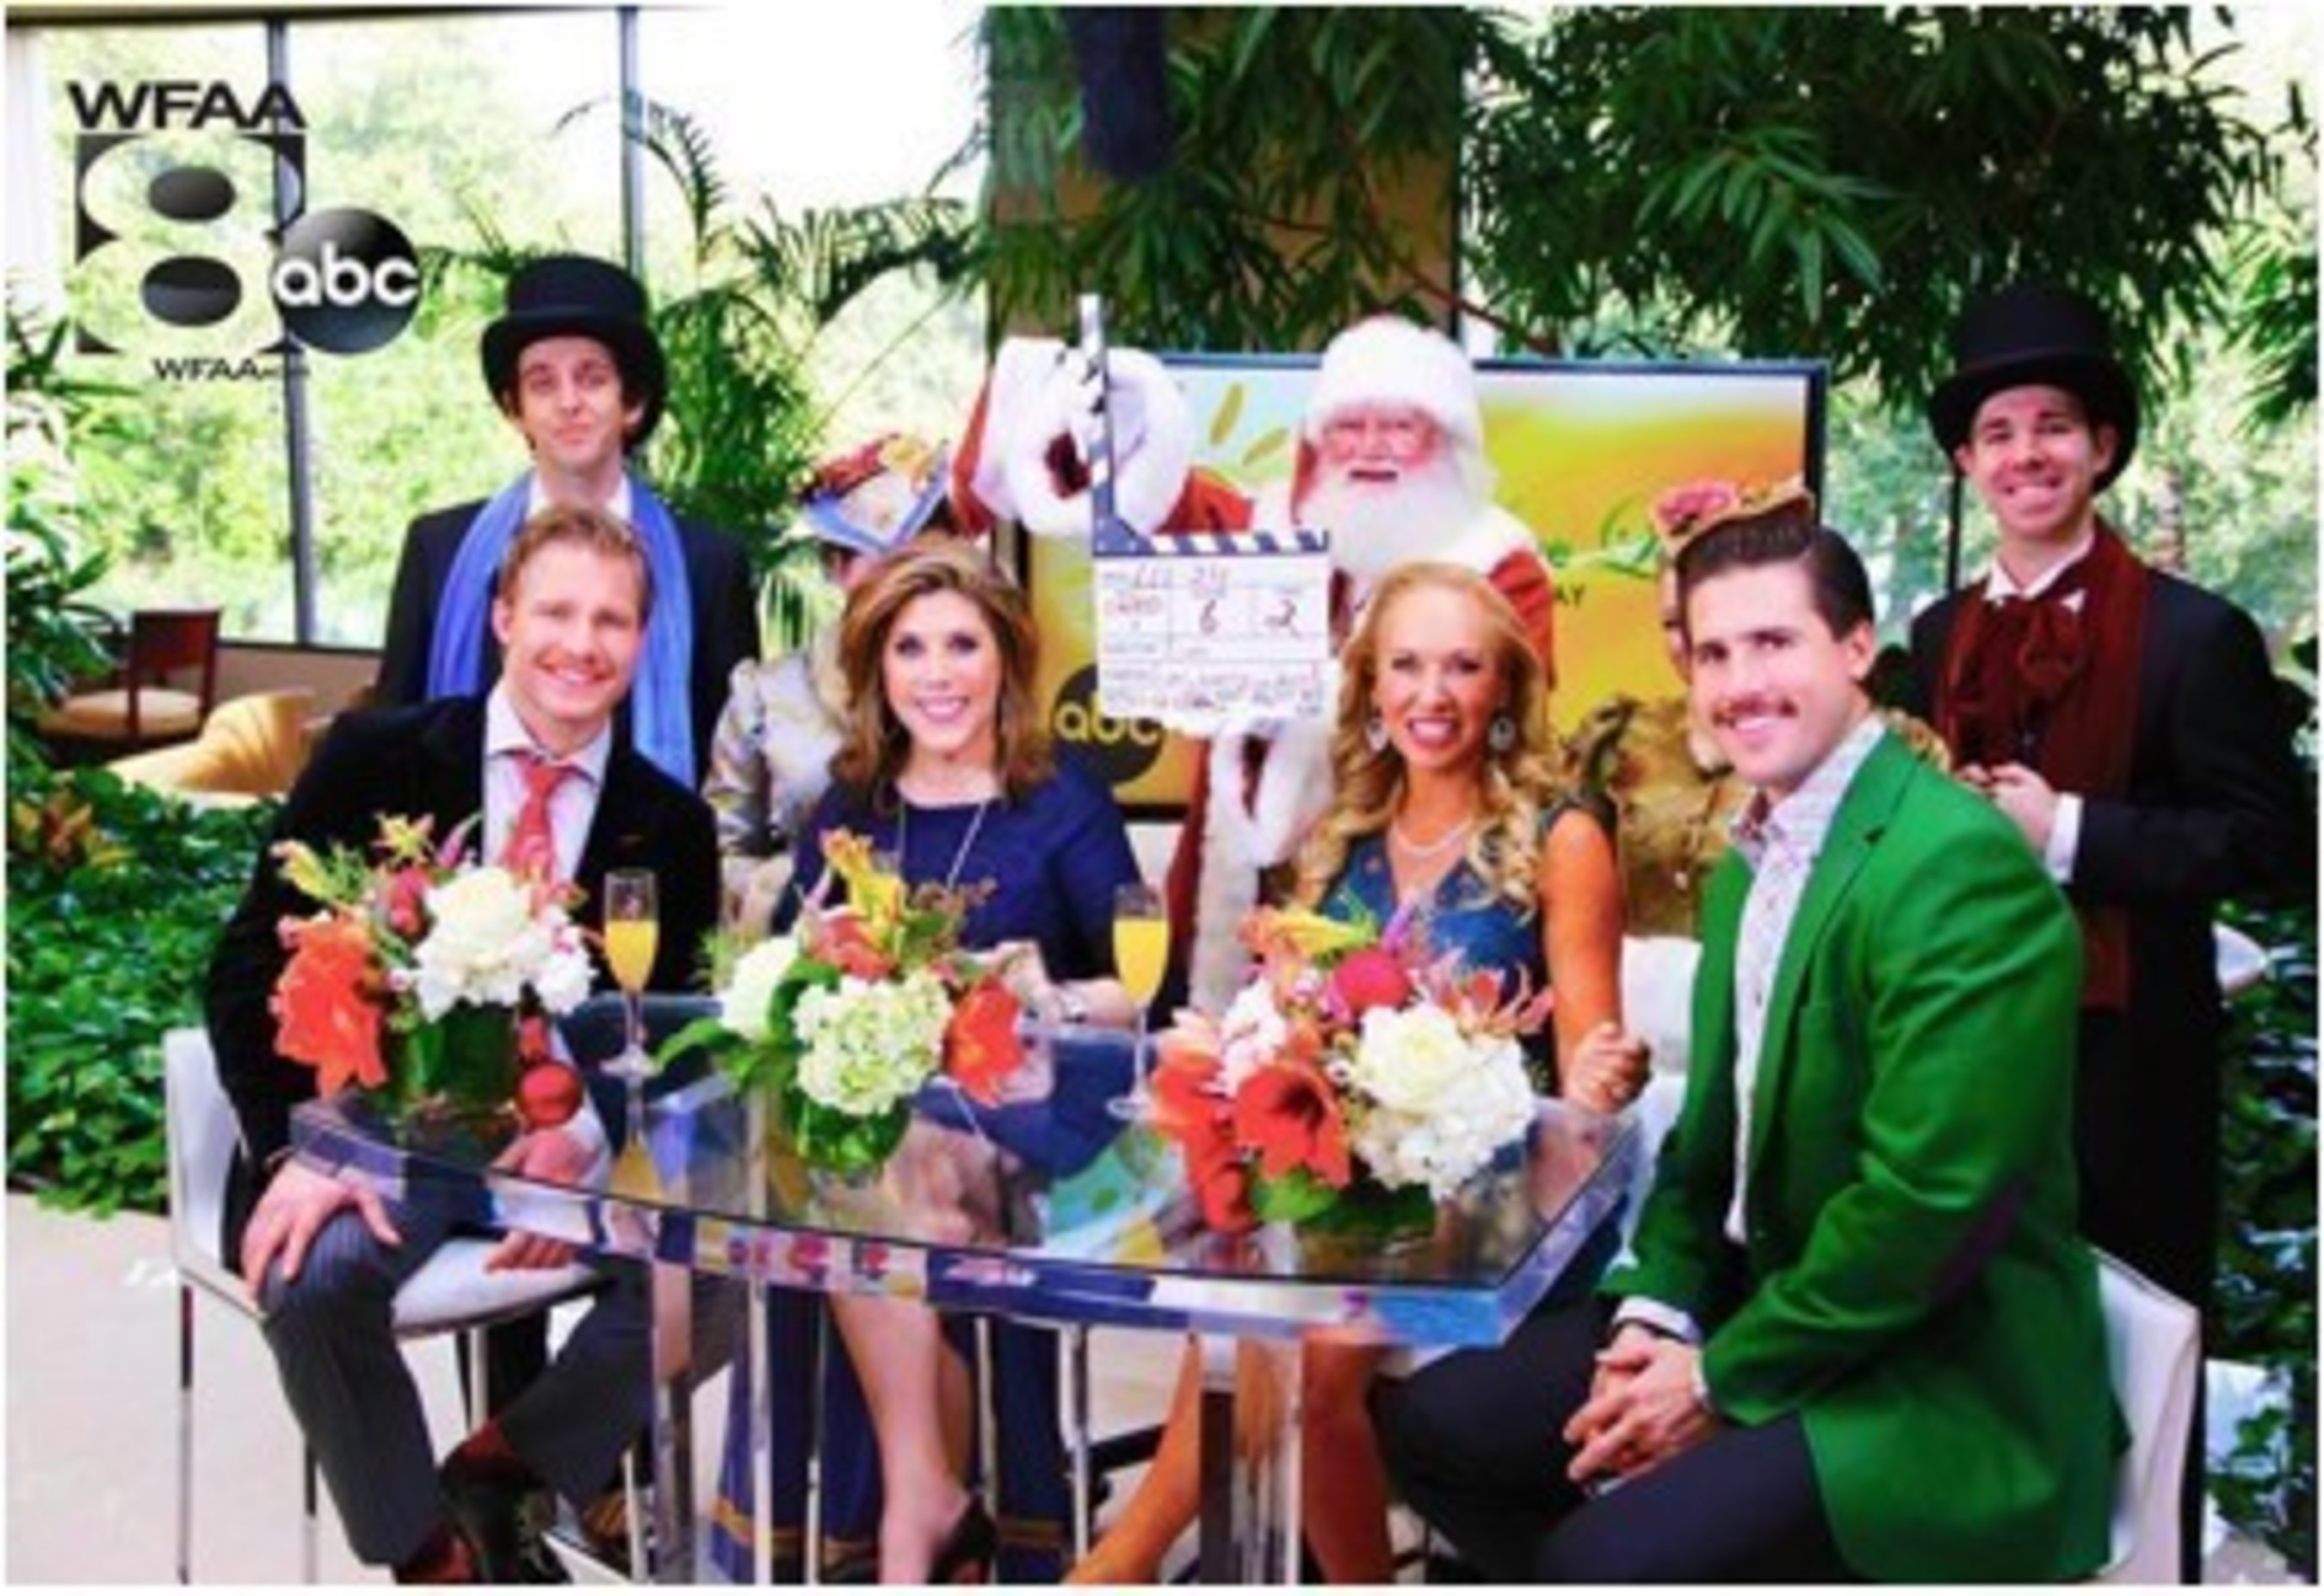 It's a 'Wild West Christmas' on the 'Live Love Laugh Today Show' With Guest CoHosts From the Bachelorette Season 11, Clint Arlis and JJ Lane on ABC Network Lifestyle